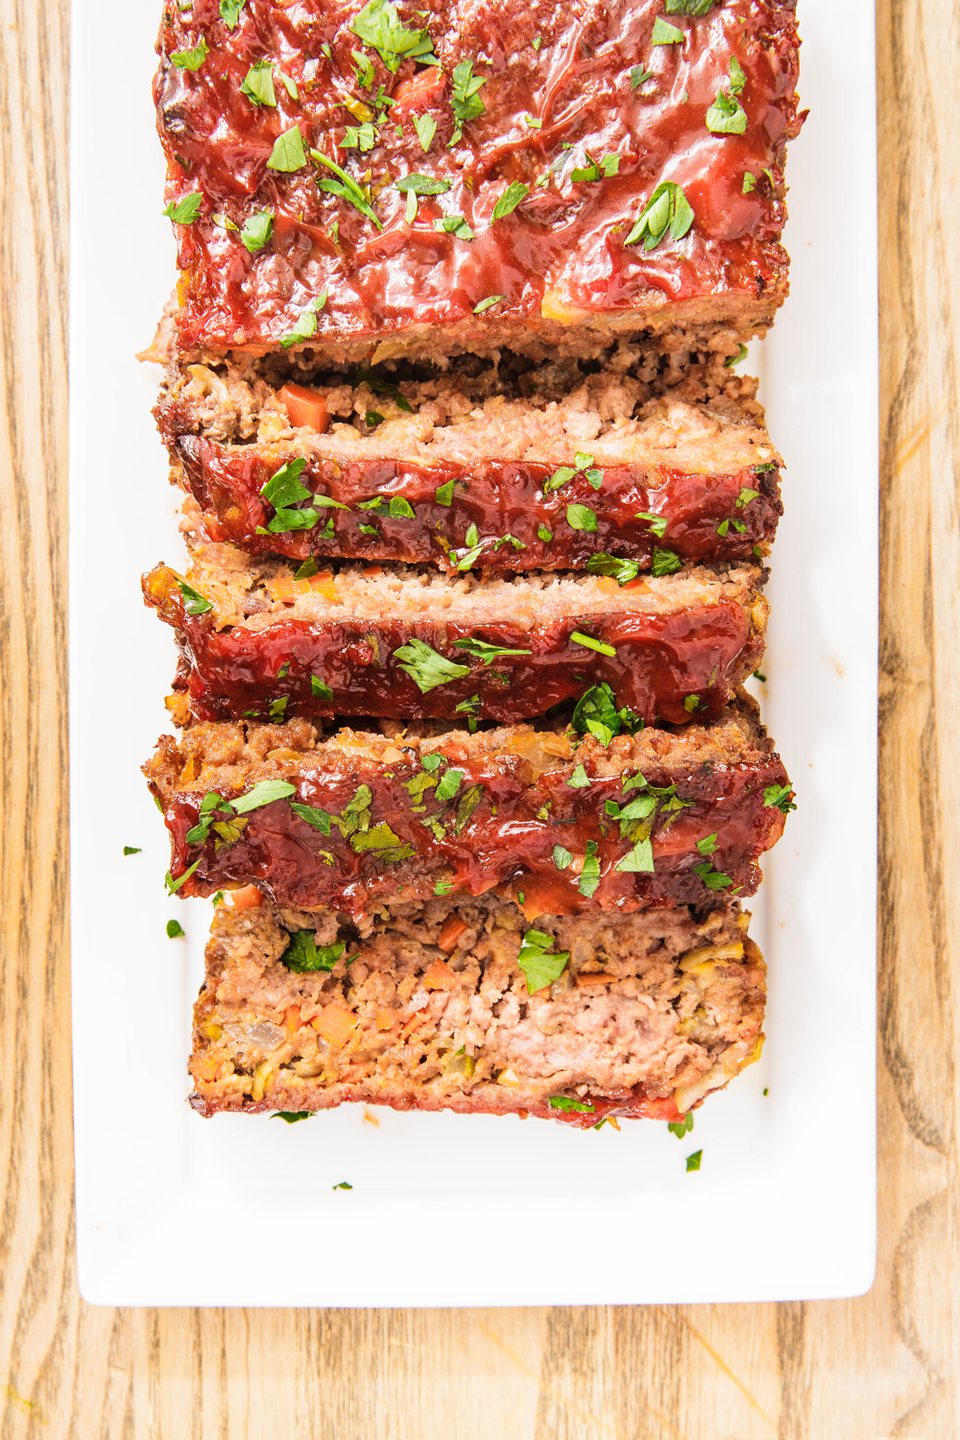 "<p>It never gets old.</p><p>Get the recipe from <a href=""https://www.delish.com/cooking/recipes/a50262/meatloaf-recipe/"" rel=""nofollow noopener"" target=""_blank"" data-ylk=""slk:Delish"" class=""link rapid-noclick-resp"">Delish</a>.</p>"